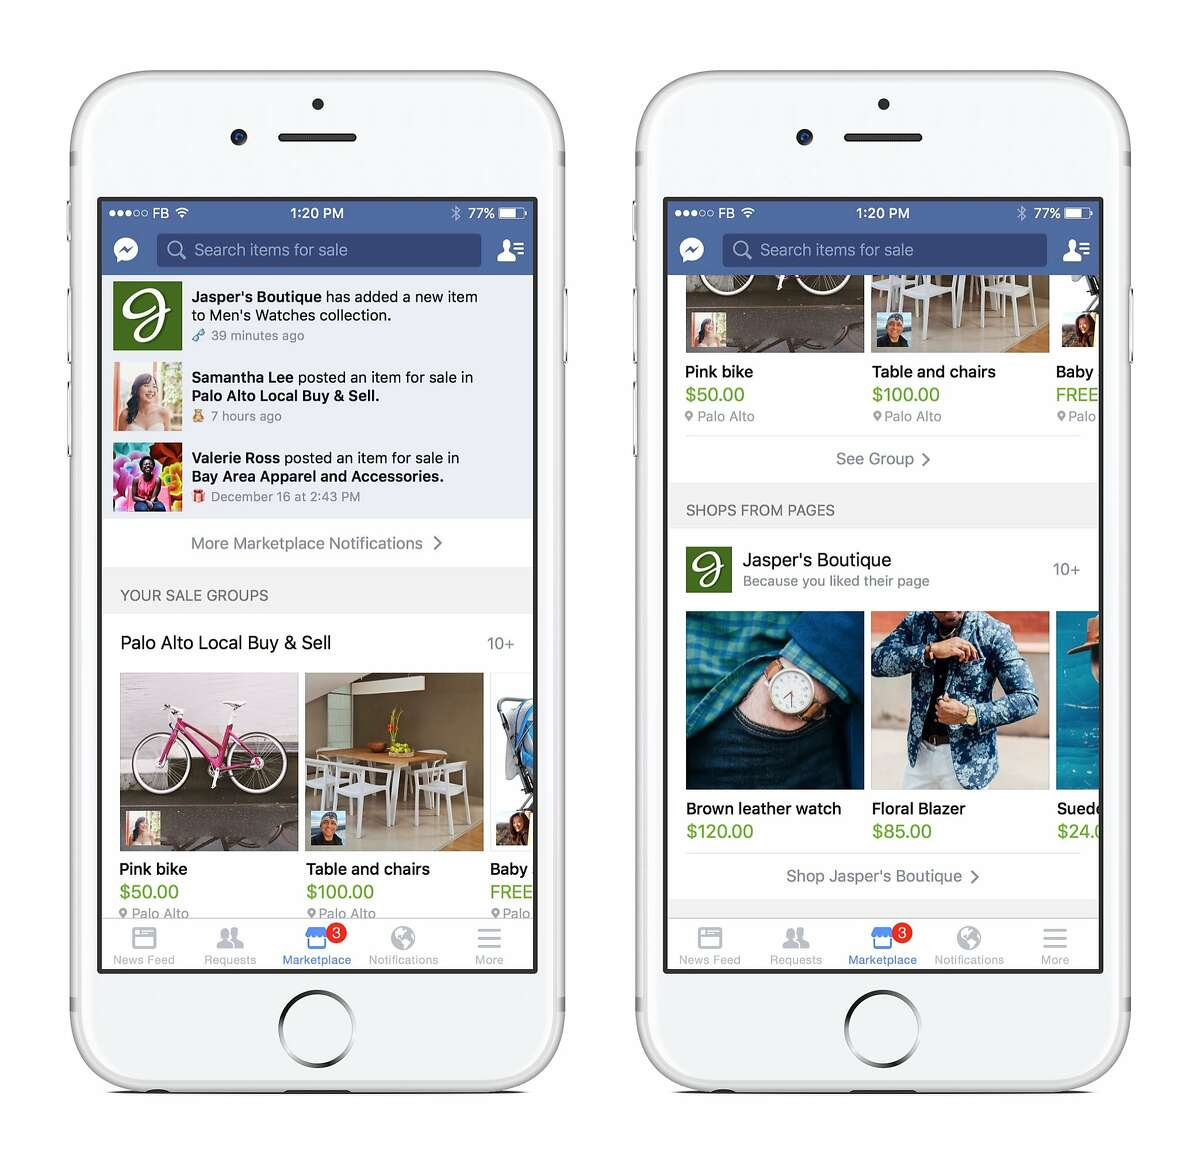 Facebook is testing a feature called Marketplace that allows some U.S. users to see items for sale on the social network. This is one of several e-commerce related features that Facebook is experimenting with.